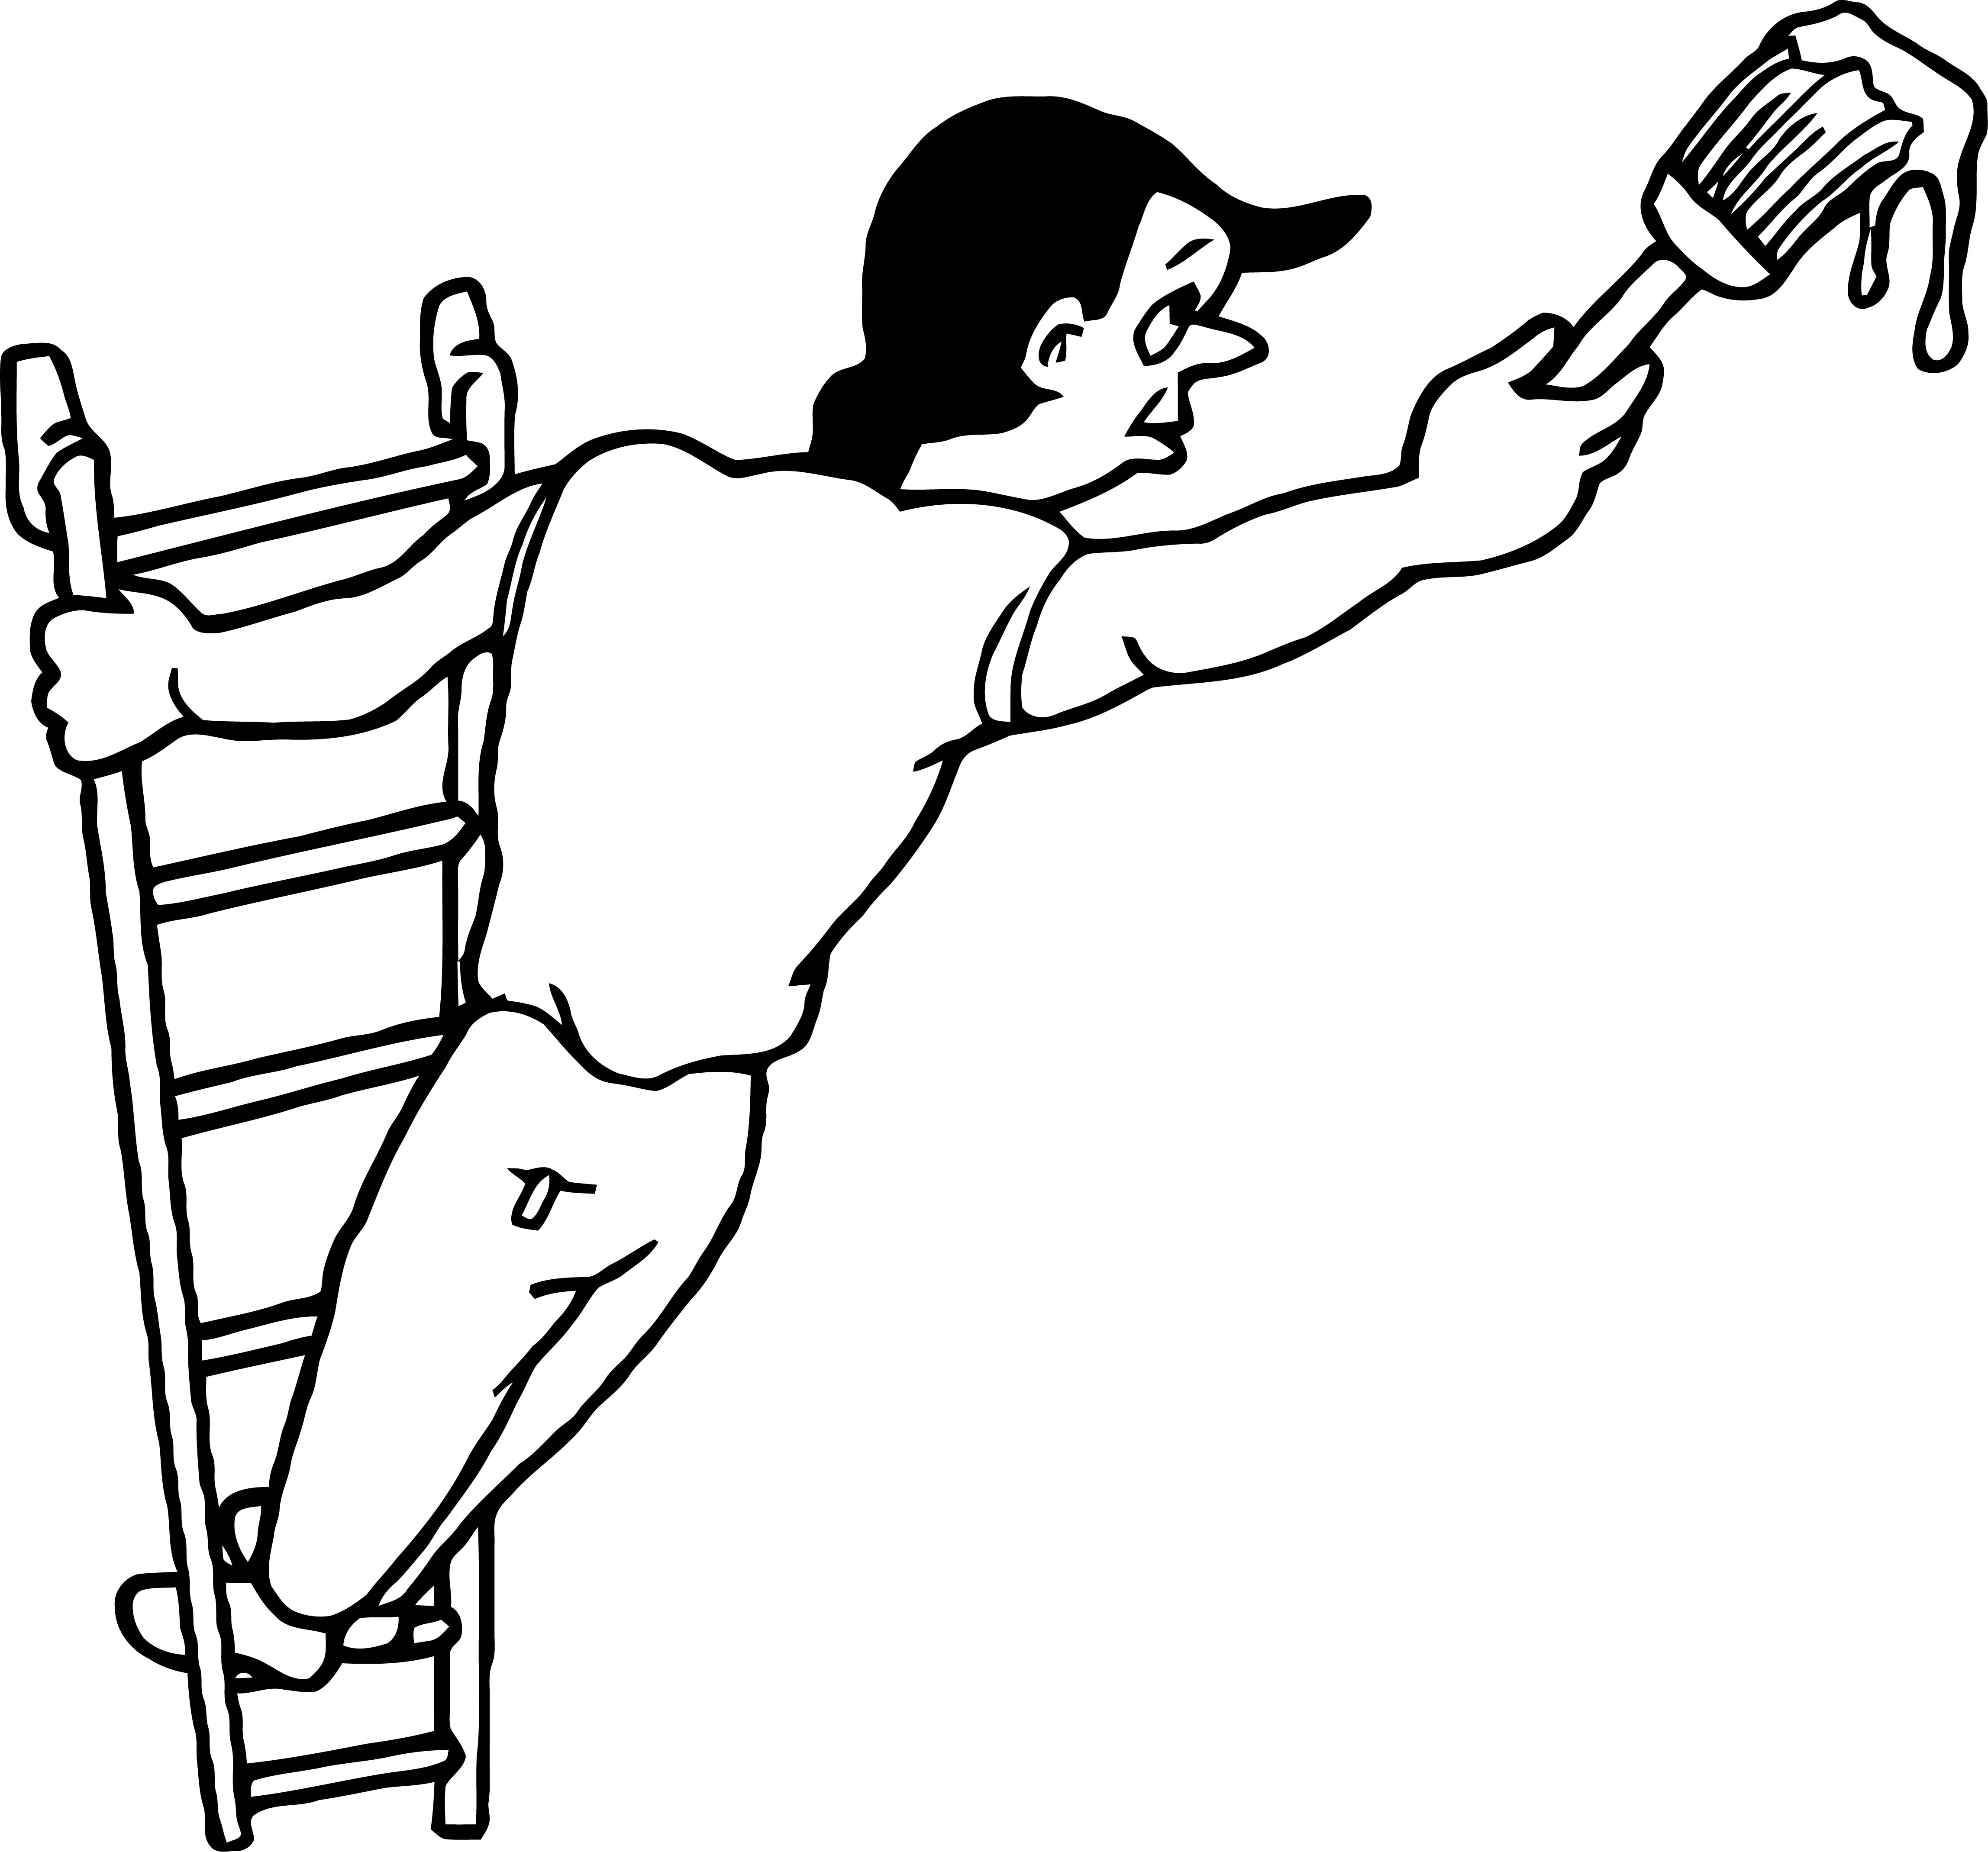 Painter Man Stair Hard Paint Coloring Page